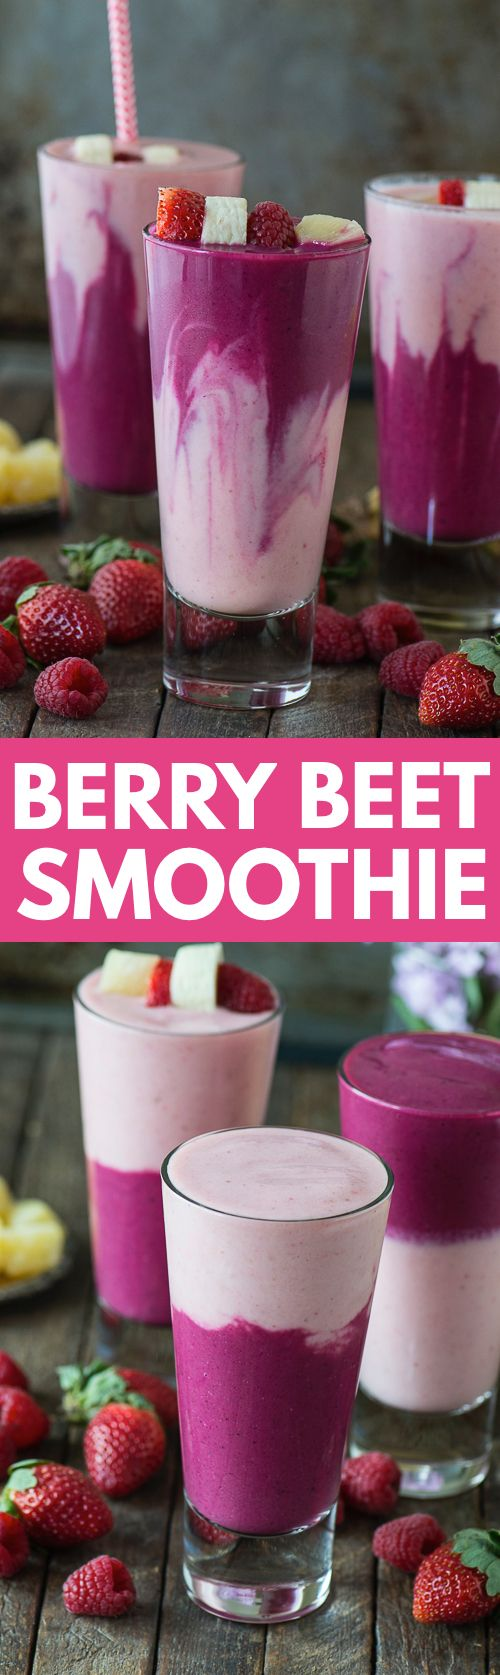 This two layer berry beet smoothie recipe is easy to make, full of fruit, and has a fun color!